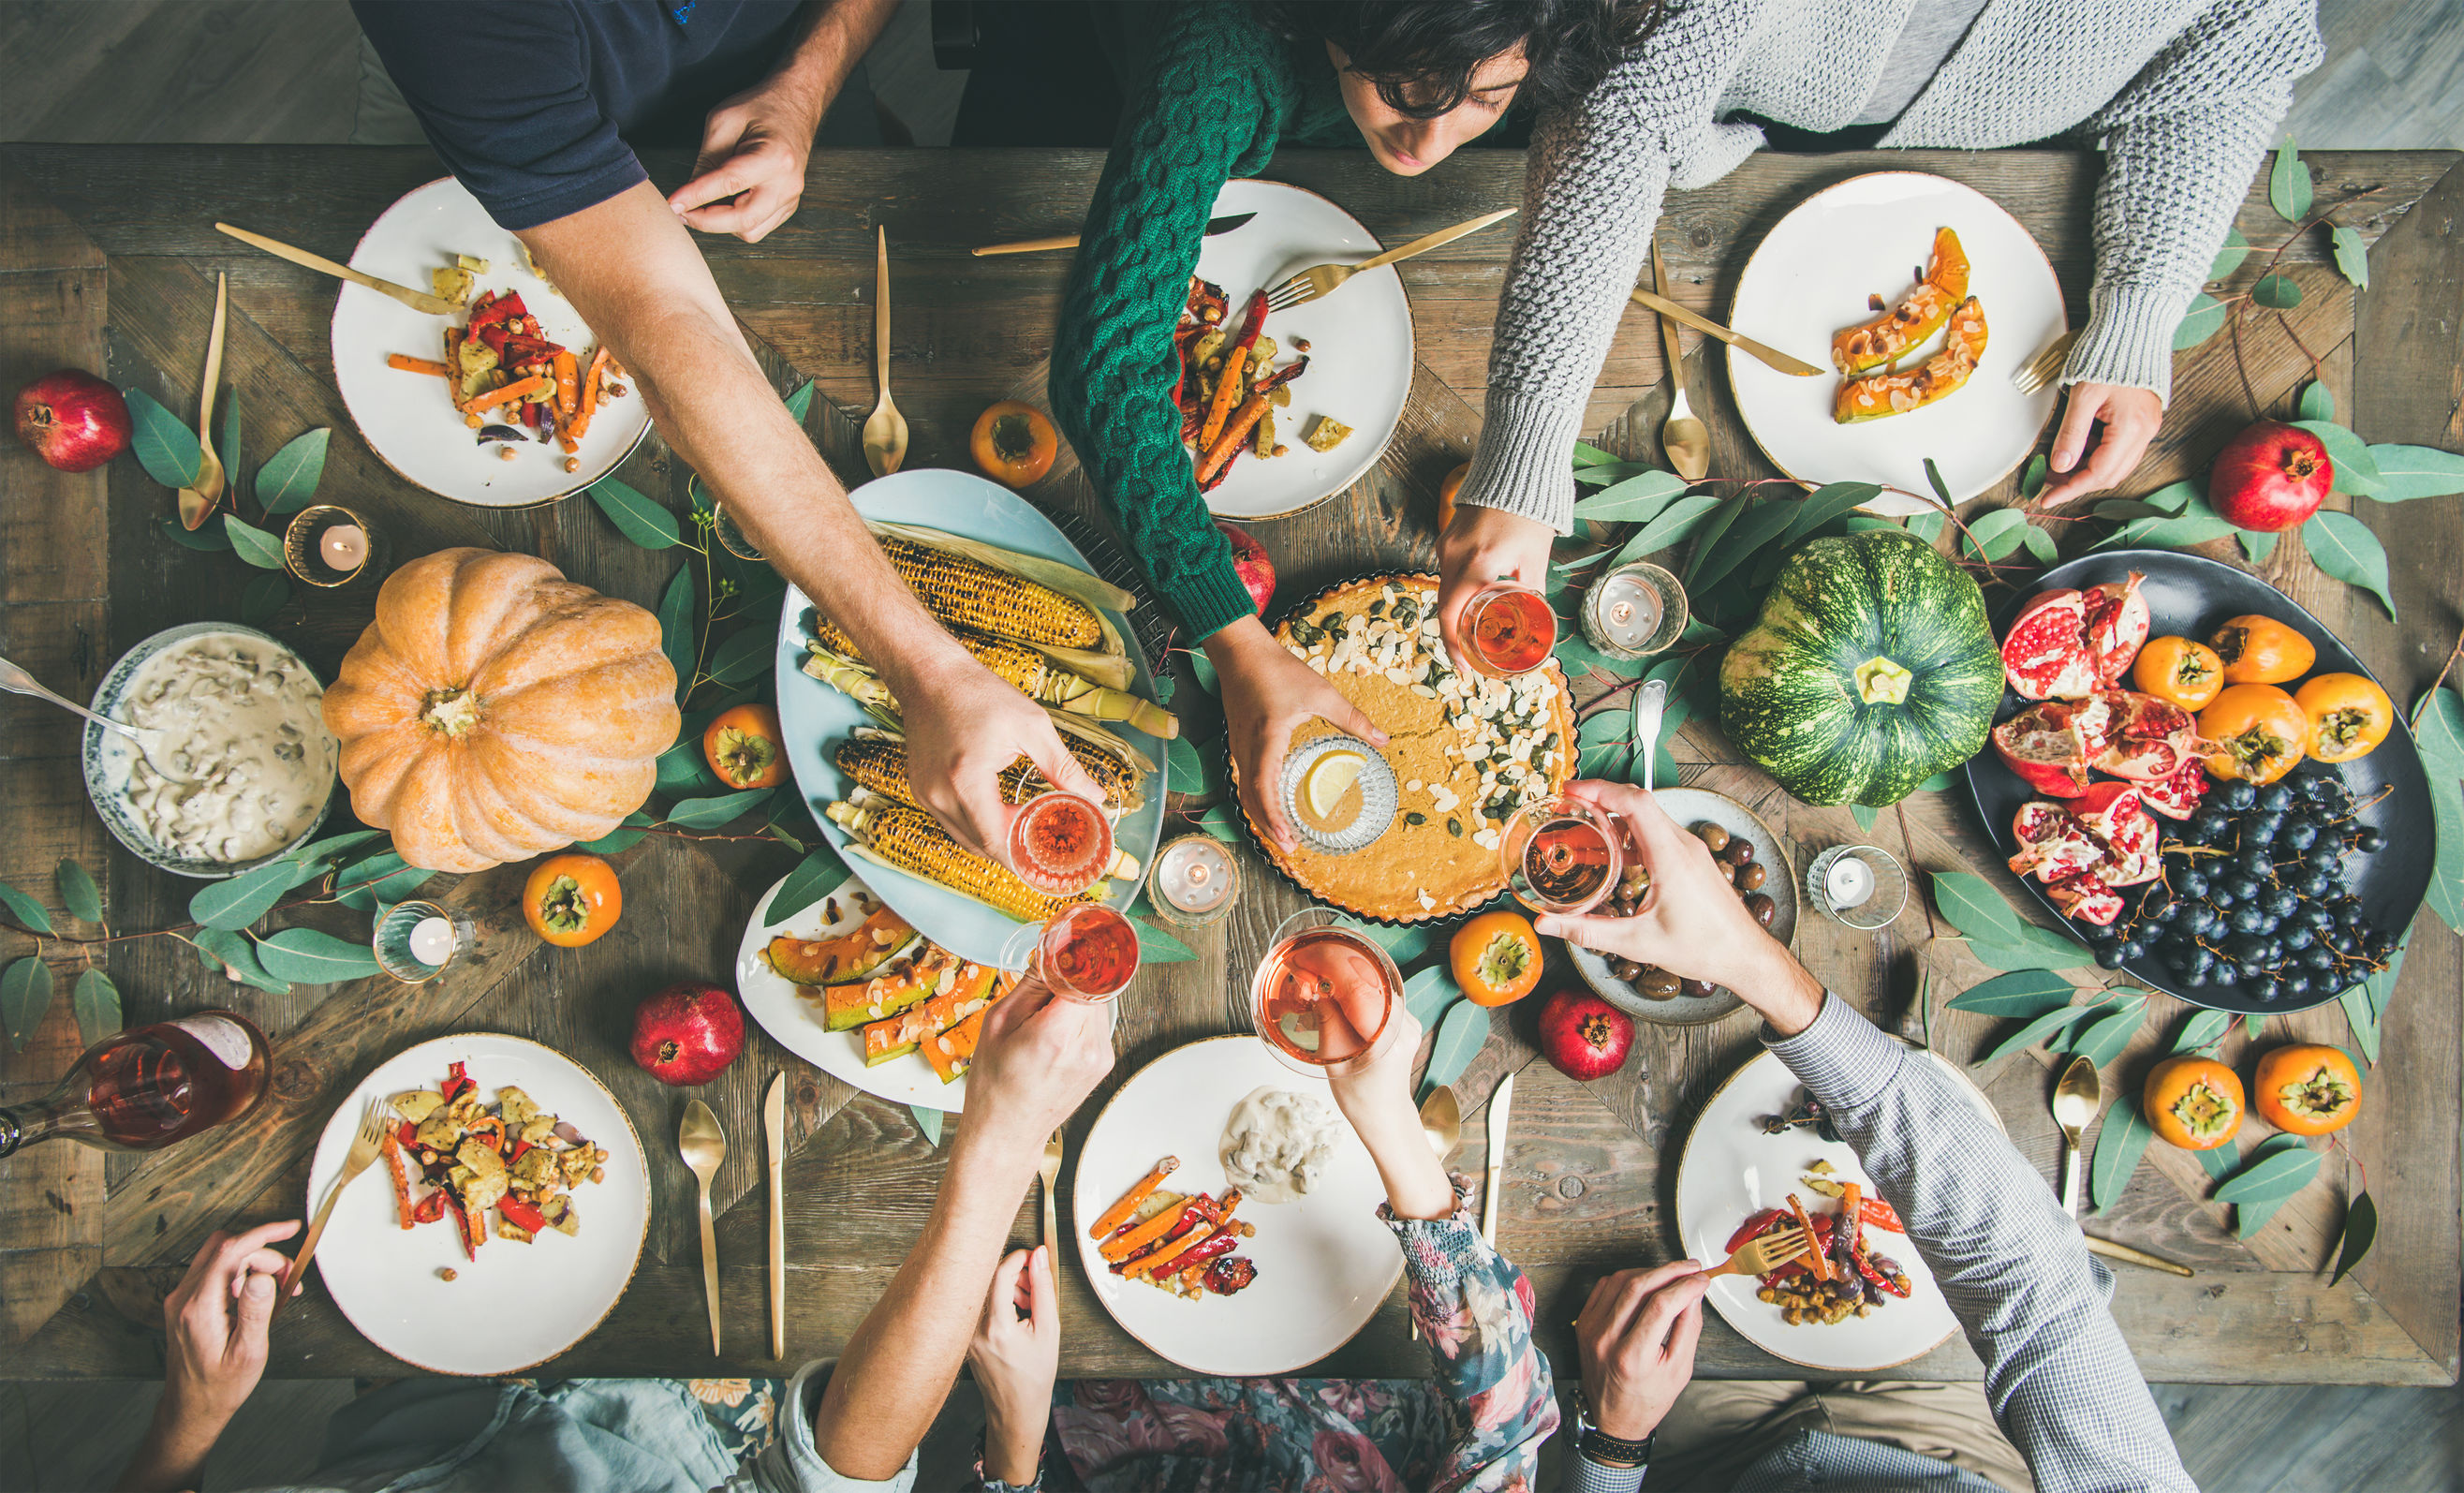 Health and Happiness this Thanksgiving